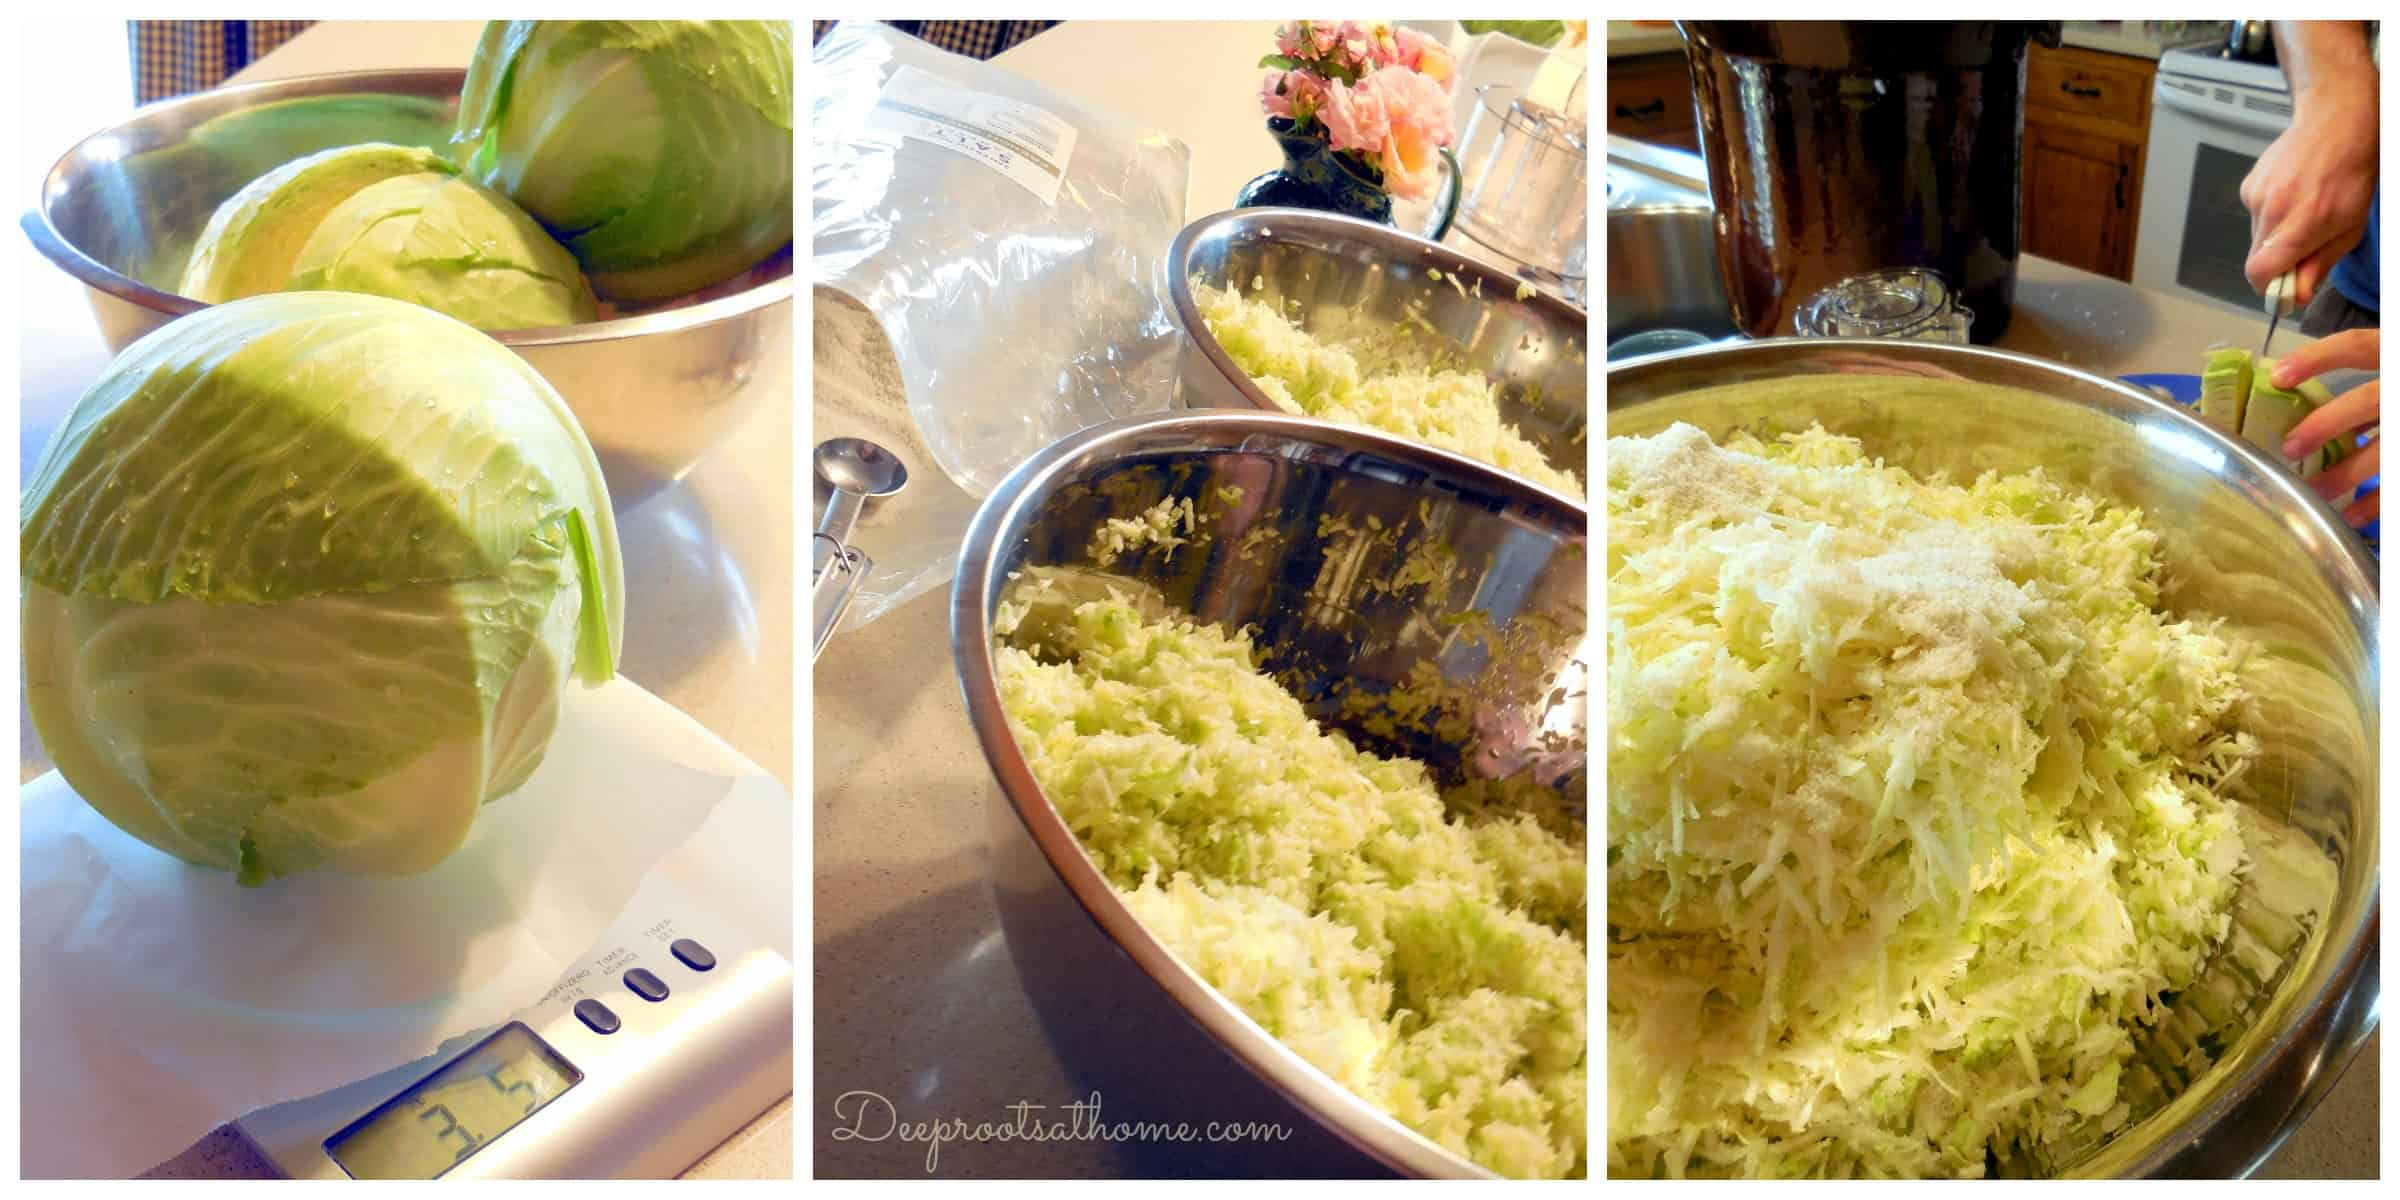 Step-by-Step Process Of Making Sauerkraut In a Crock, DIY, homemade, homemaking, keeper at home, choucroute, Eastern Europe, barrels, kitchen/postal scale, Sandor Katz, quote, books, French Grey salt, Himalayan pink salt, sea salt, minerals, shredded cabbage, chopped cabbage, independence, open crock, Boss Pickler, Fido jar, canning jars, mason jars, Ball jars, salt ratio, bon appetit, Alsace Lorraine, France, cellar, food storage, fermentation, big batches, crunchy, sour, kahm yeast, Holland, caraway seeds, lidded crock, Harsch crock, Gartopf, Germany, grandmothers, probiotic, Reuben sandwiches, flavor, crunchy, beneficial bacteria, bad bacteria, lactobacillus, lactic acid, Swabian village, brine, salt solution, lacto-fermentation, sustainable living, living off the grid, the old ways, thermometer, heated garage, food storage, pantry, kraut, collage